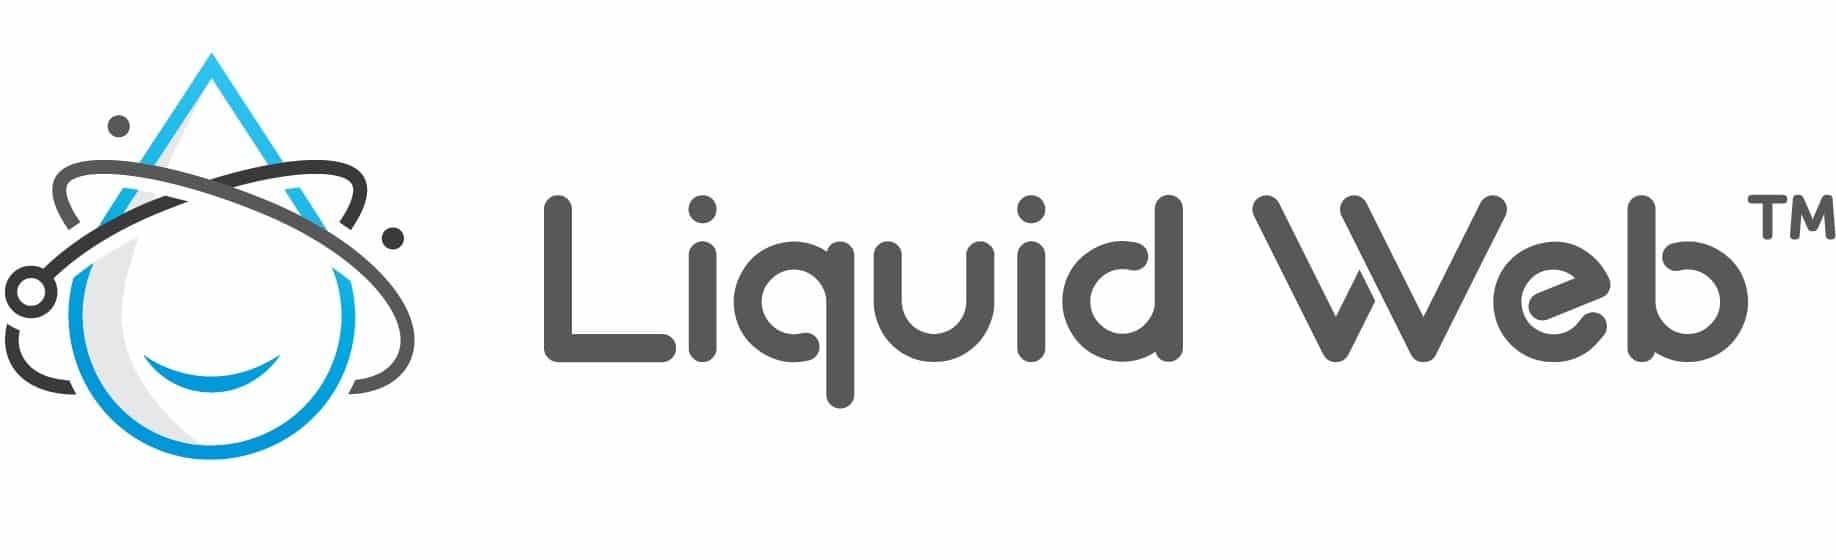 Liquid Web Partner